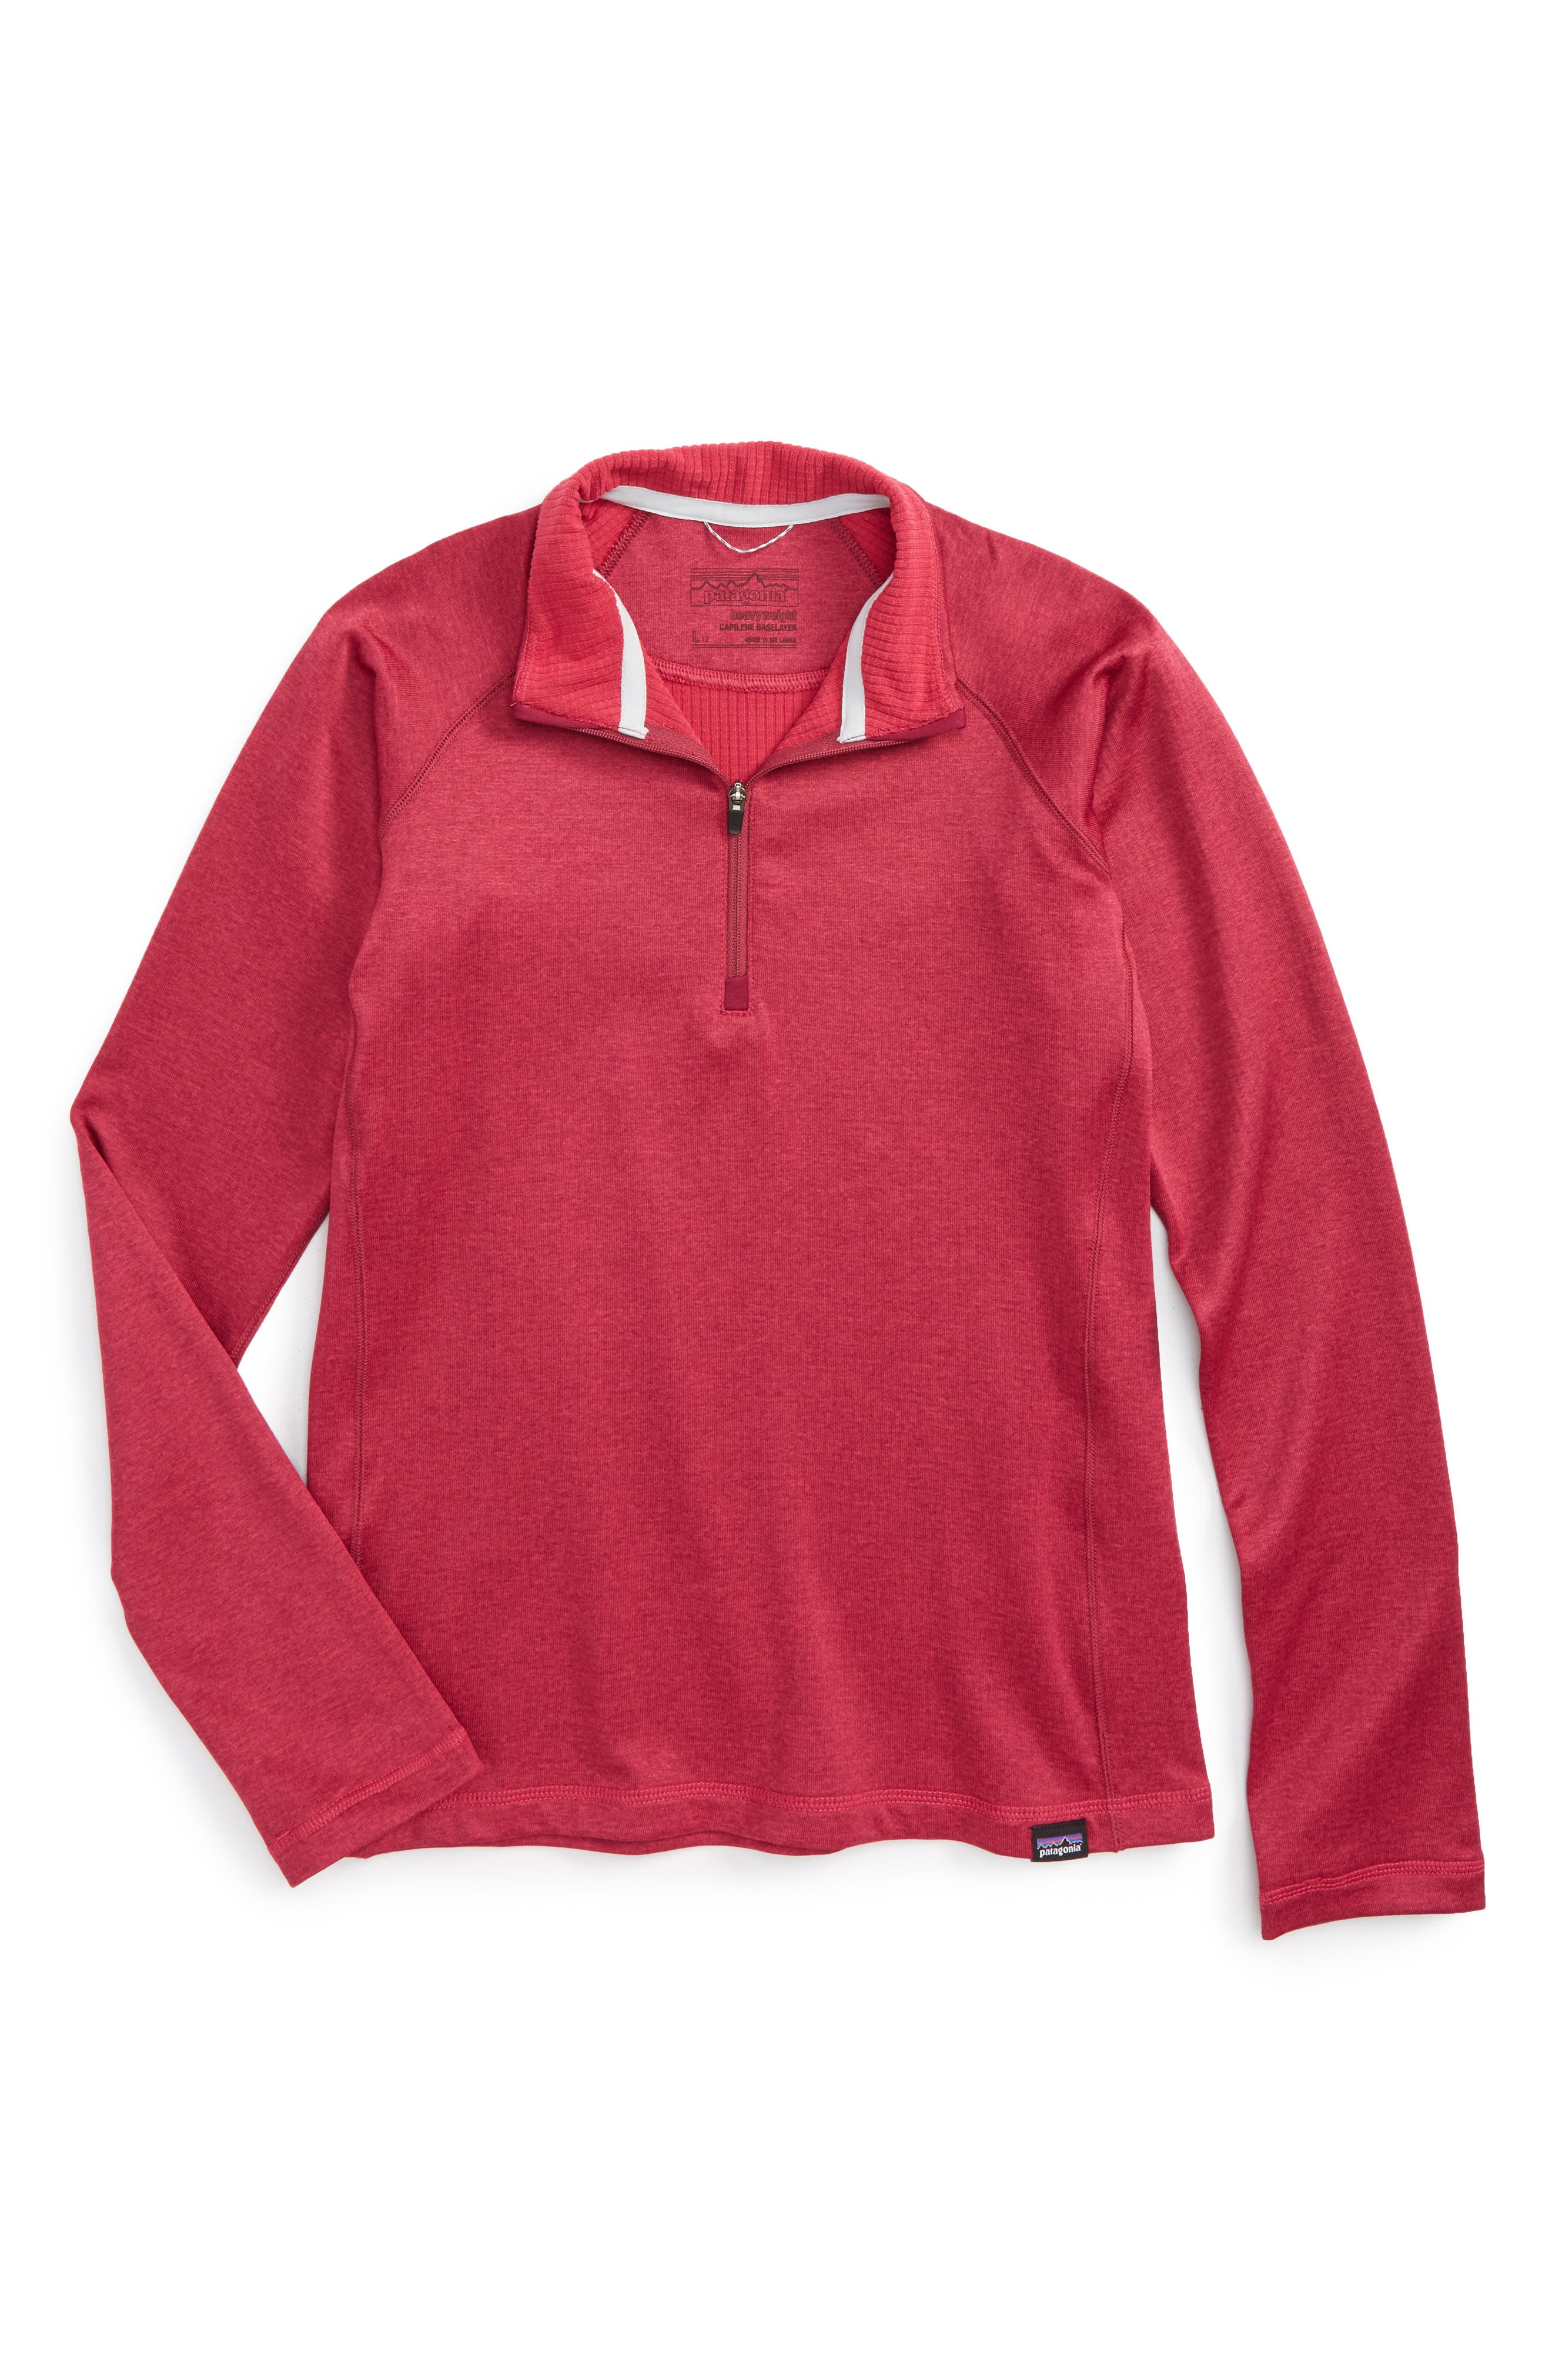 Capilene<sup>®</sup> Heavyweight Base Layer Pullover,                         Main,                         color, Craft Pink